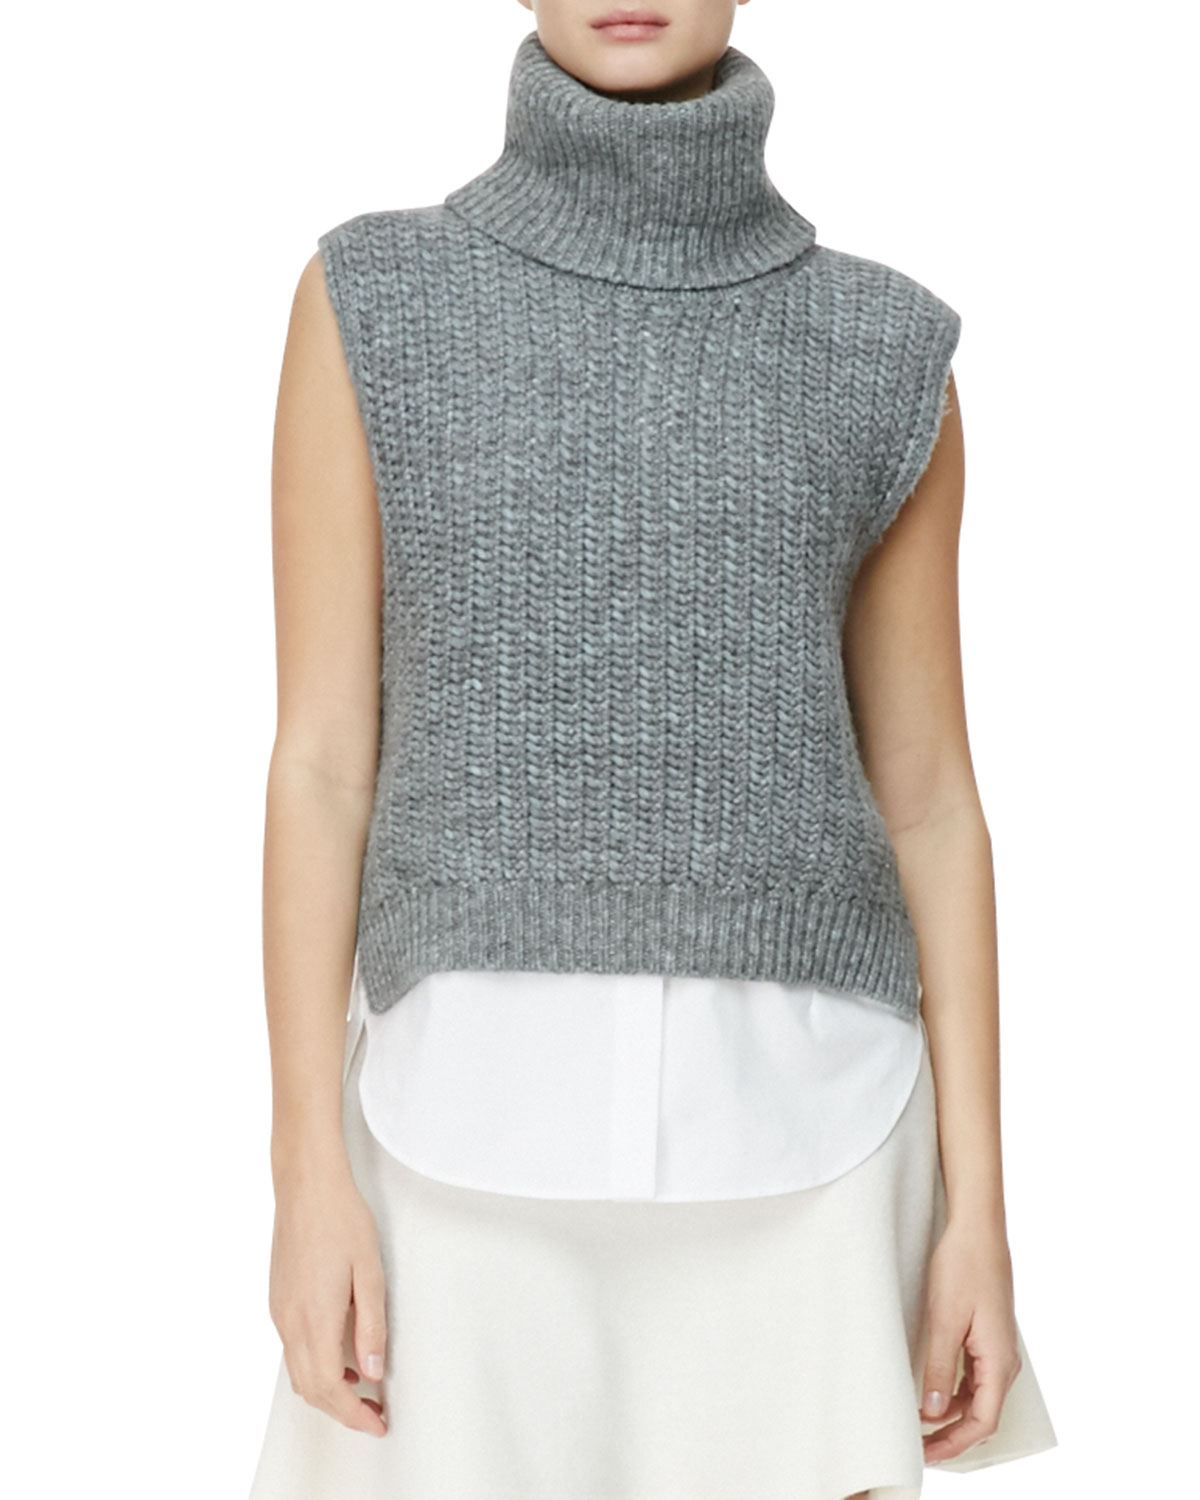 3.1 phillip lim Sleeveless High-Low Turtleneck Sweater in Blue | Lyst